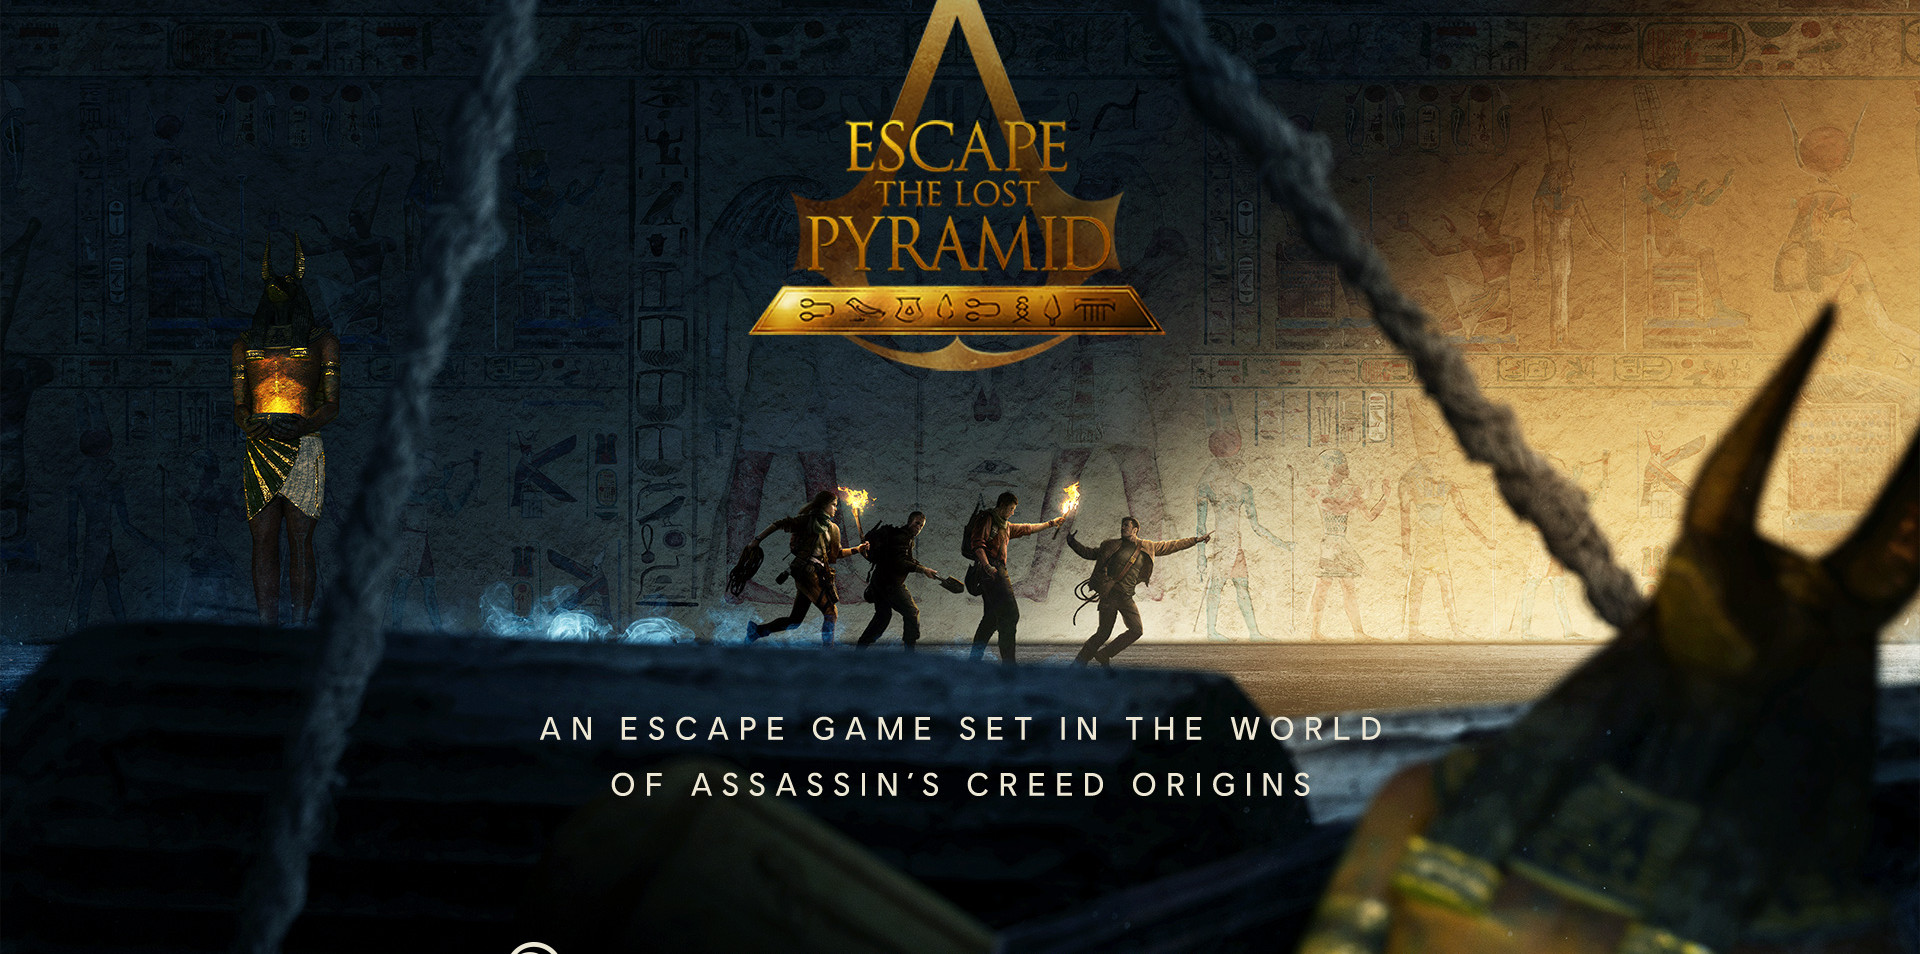 Escape the Lost Pyramid - VR Escape Game